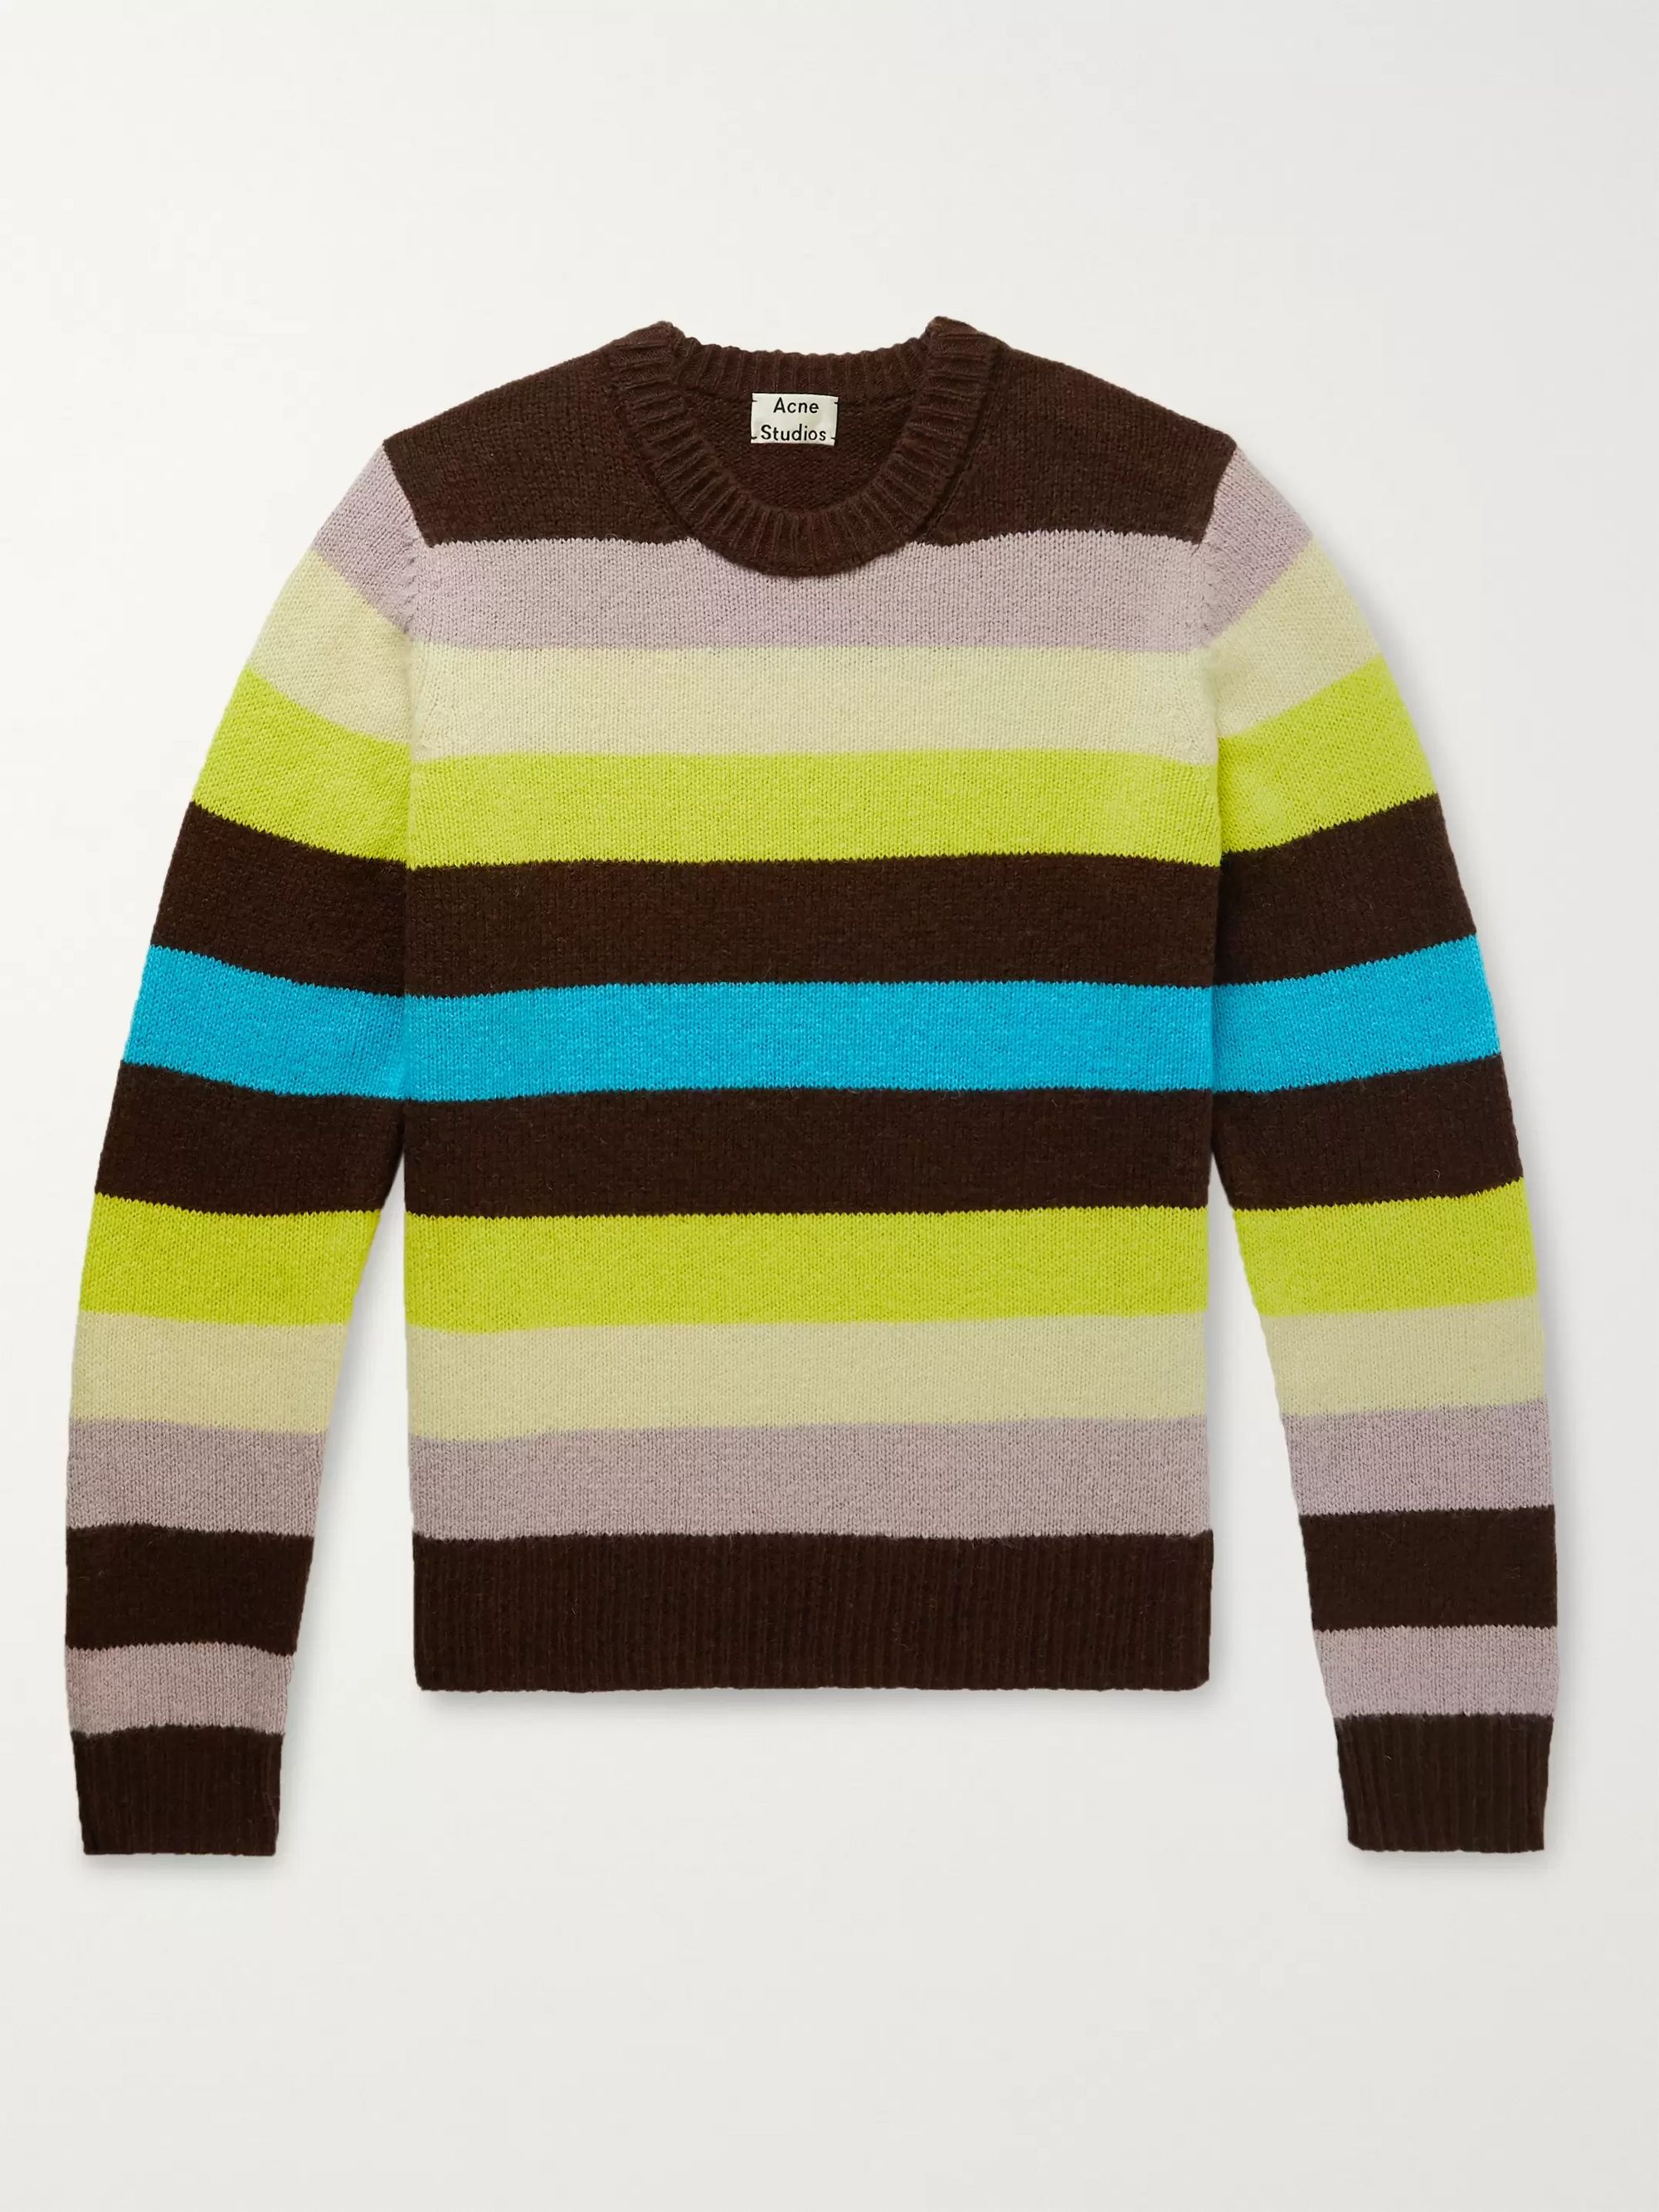 Acne Studios Striped Wool Sweater